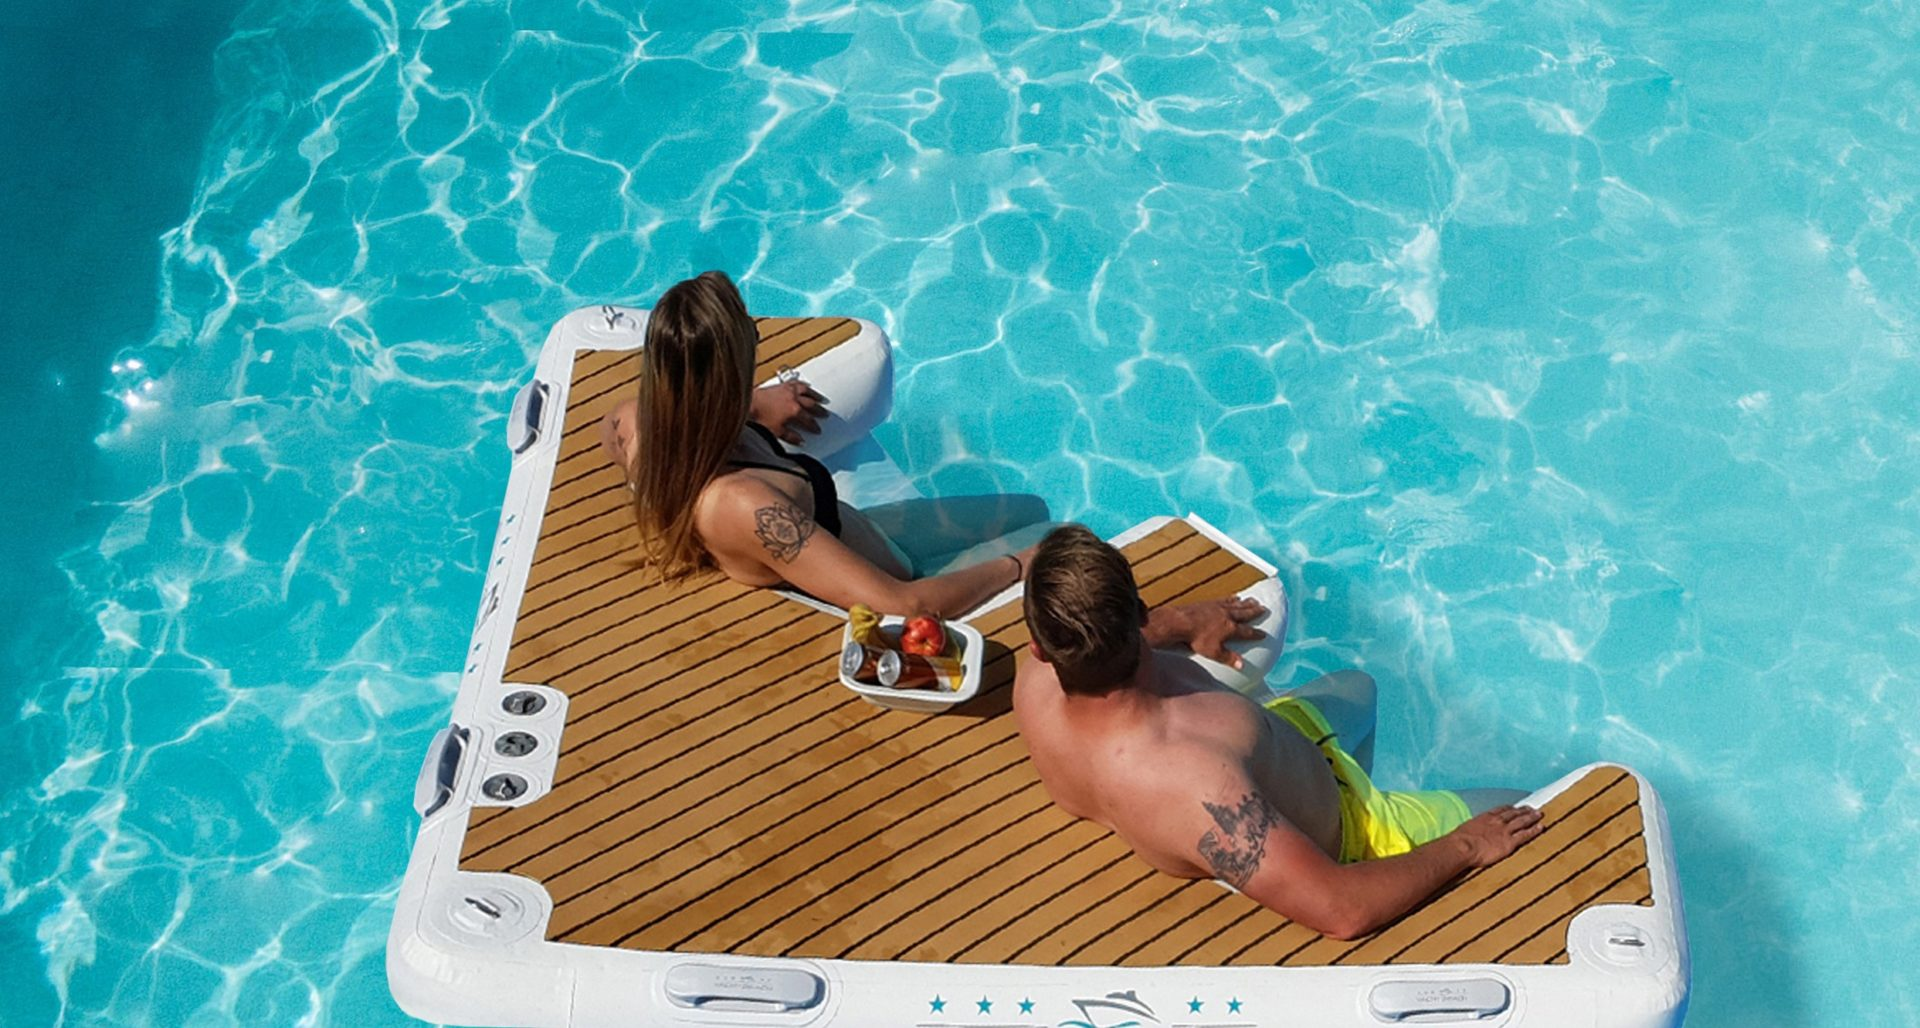 multidock and lounger